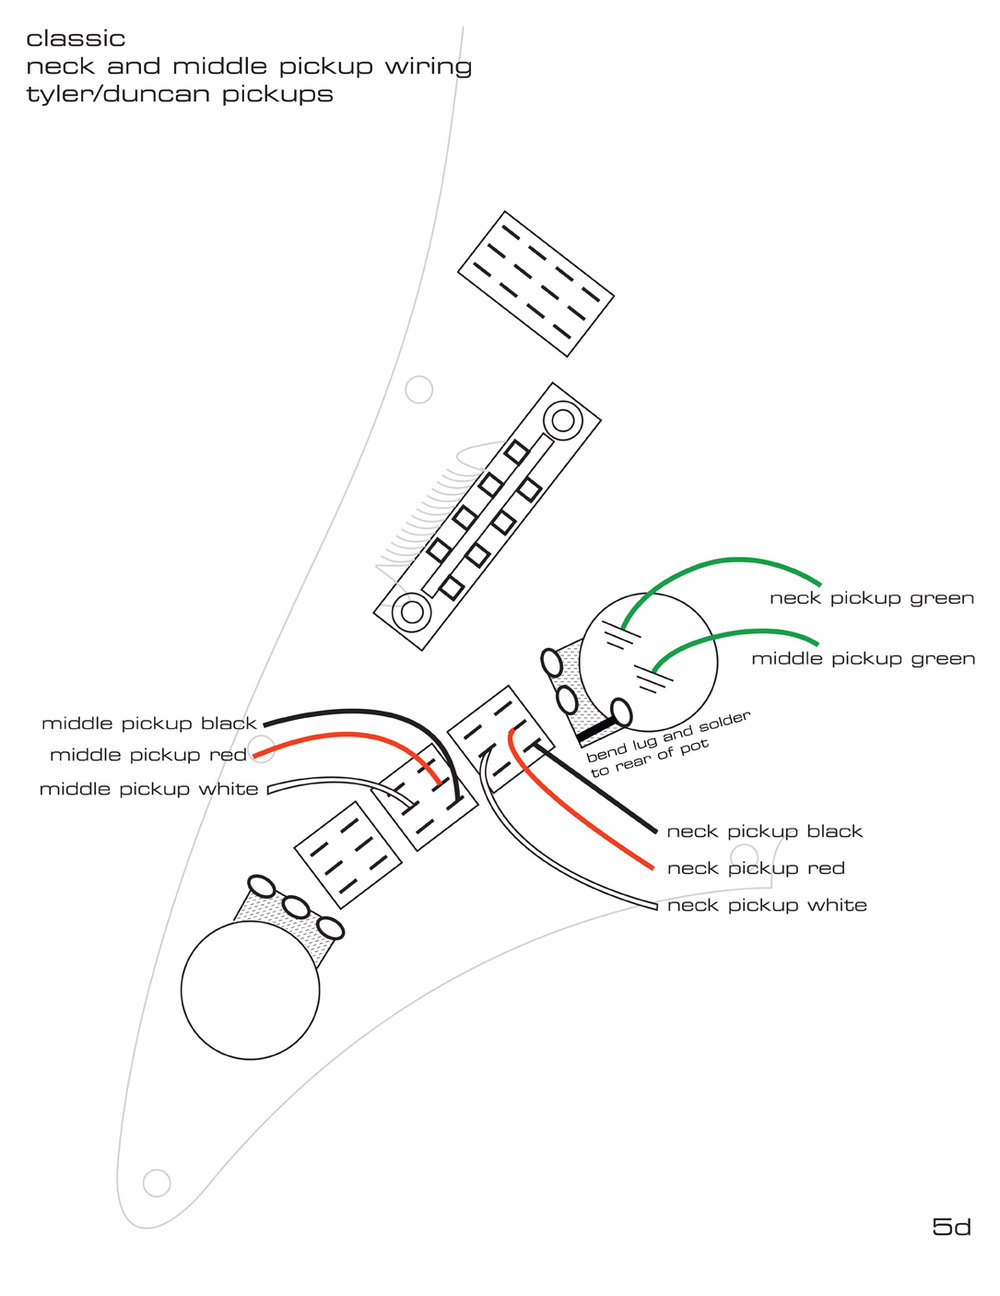 pickguard wiring diagrams james tyler guitars rh tylerguitars com Basic Electrical Wiring Diagrams 3-Way Switch Wiring Diagram